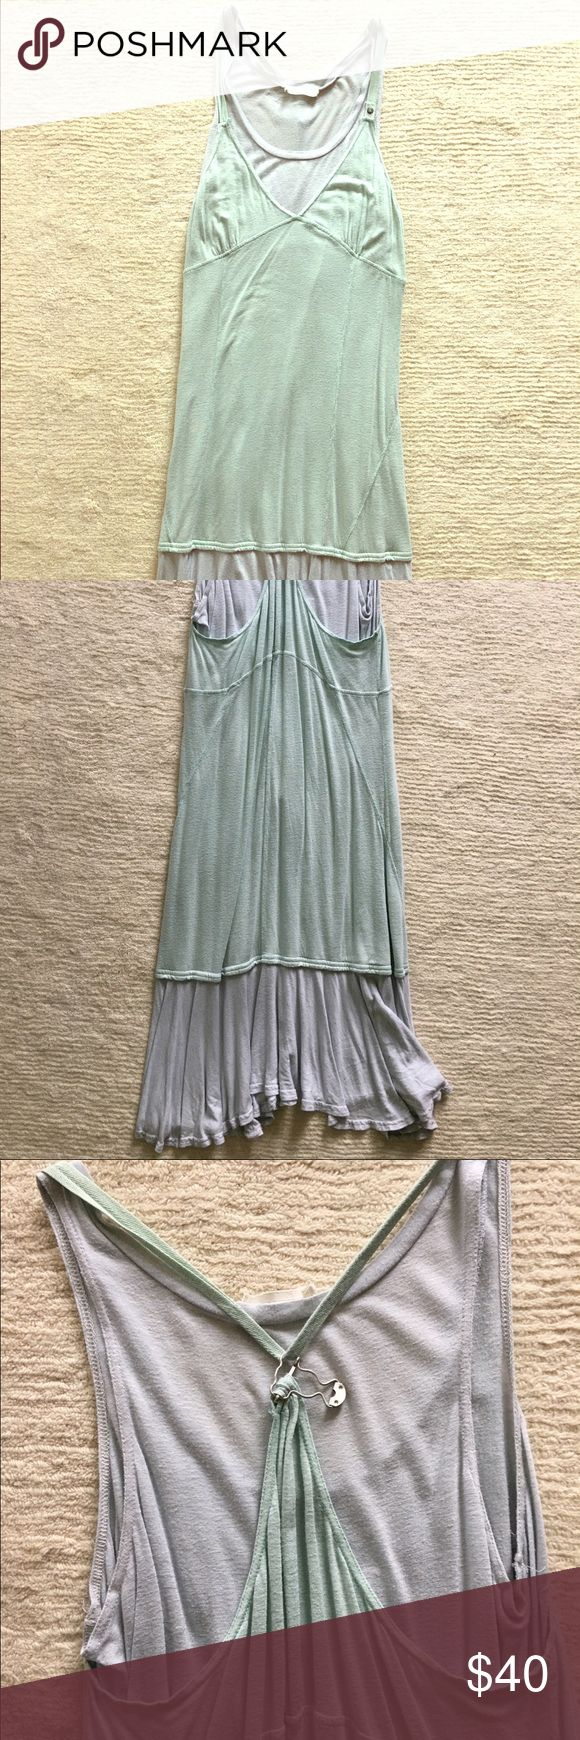 Diesel Dress Blue Size Small Cotton Light blue and sea foam green colors very pretty, flows, hipster, fits big, too big for me but good for someone with curves and full figure. Used, worm a few times. Diesel brand name. Diesel Dresses Maxi